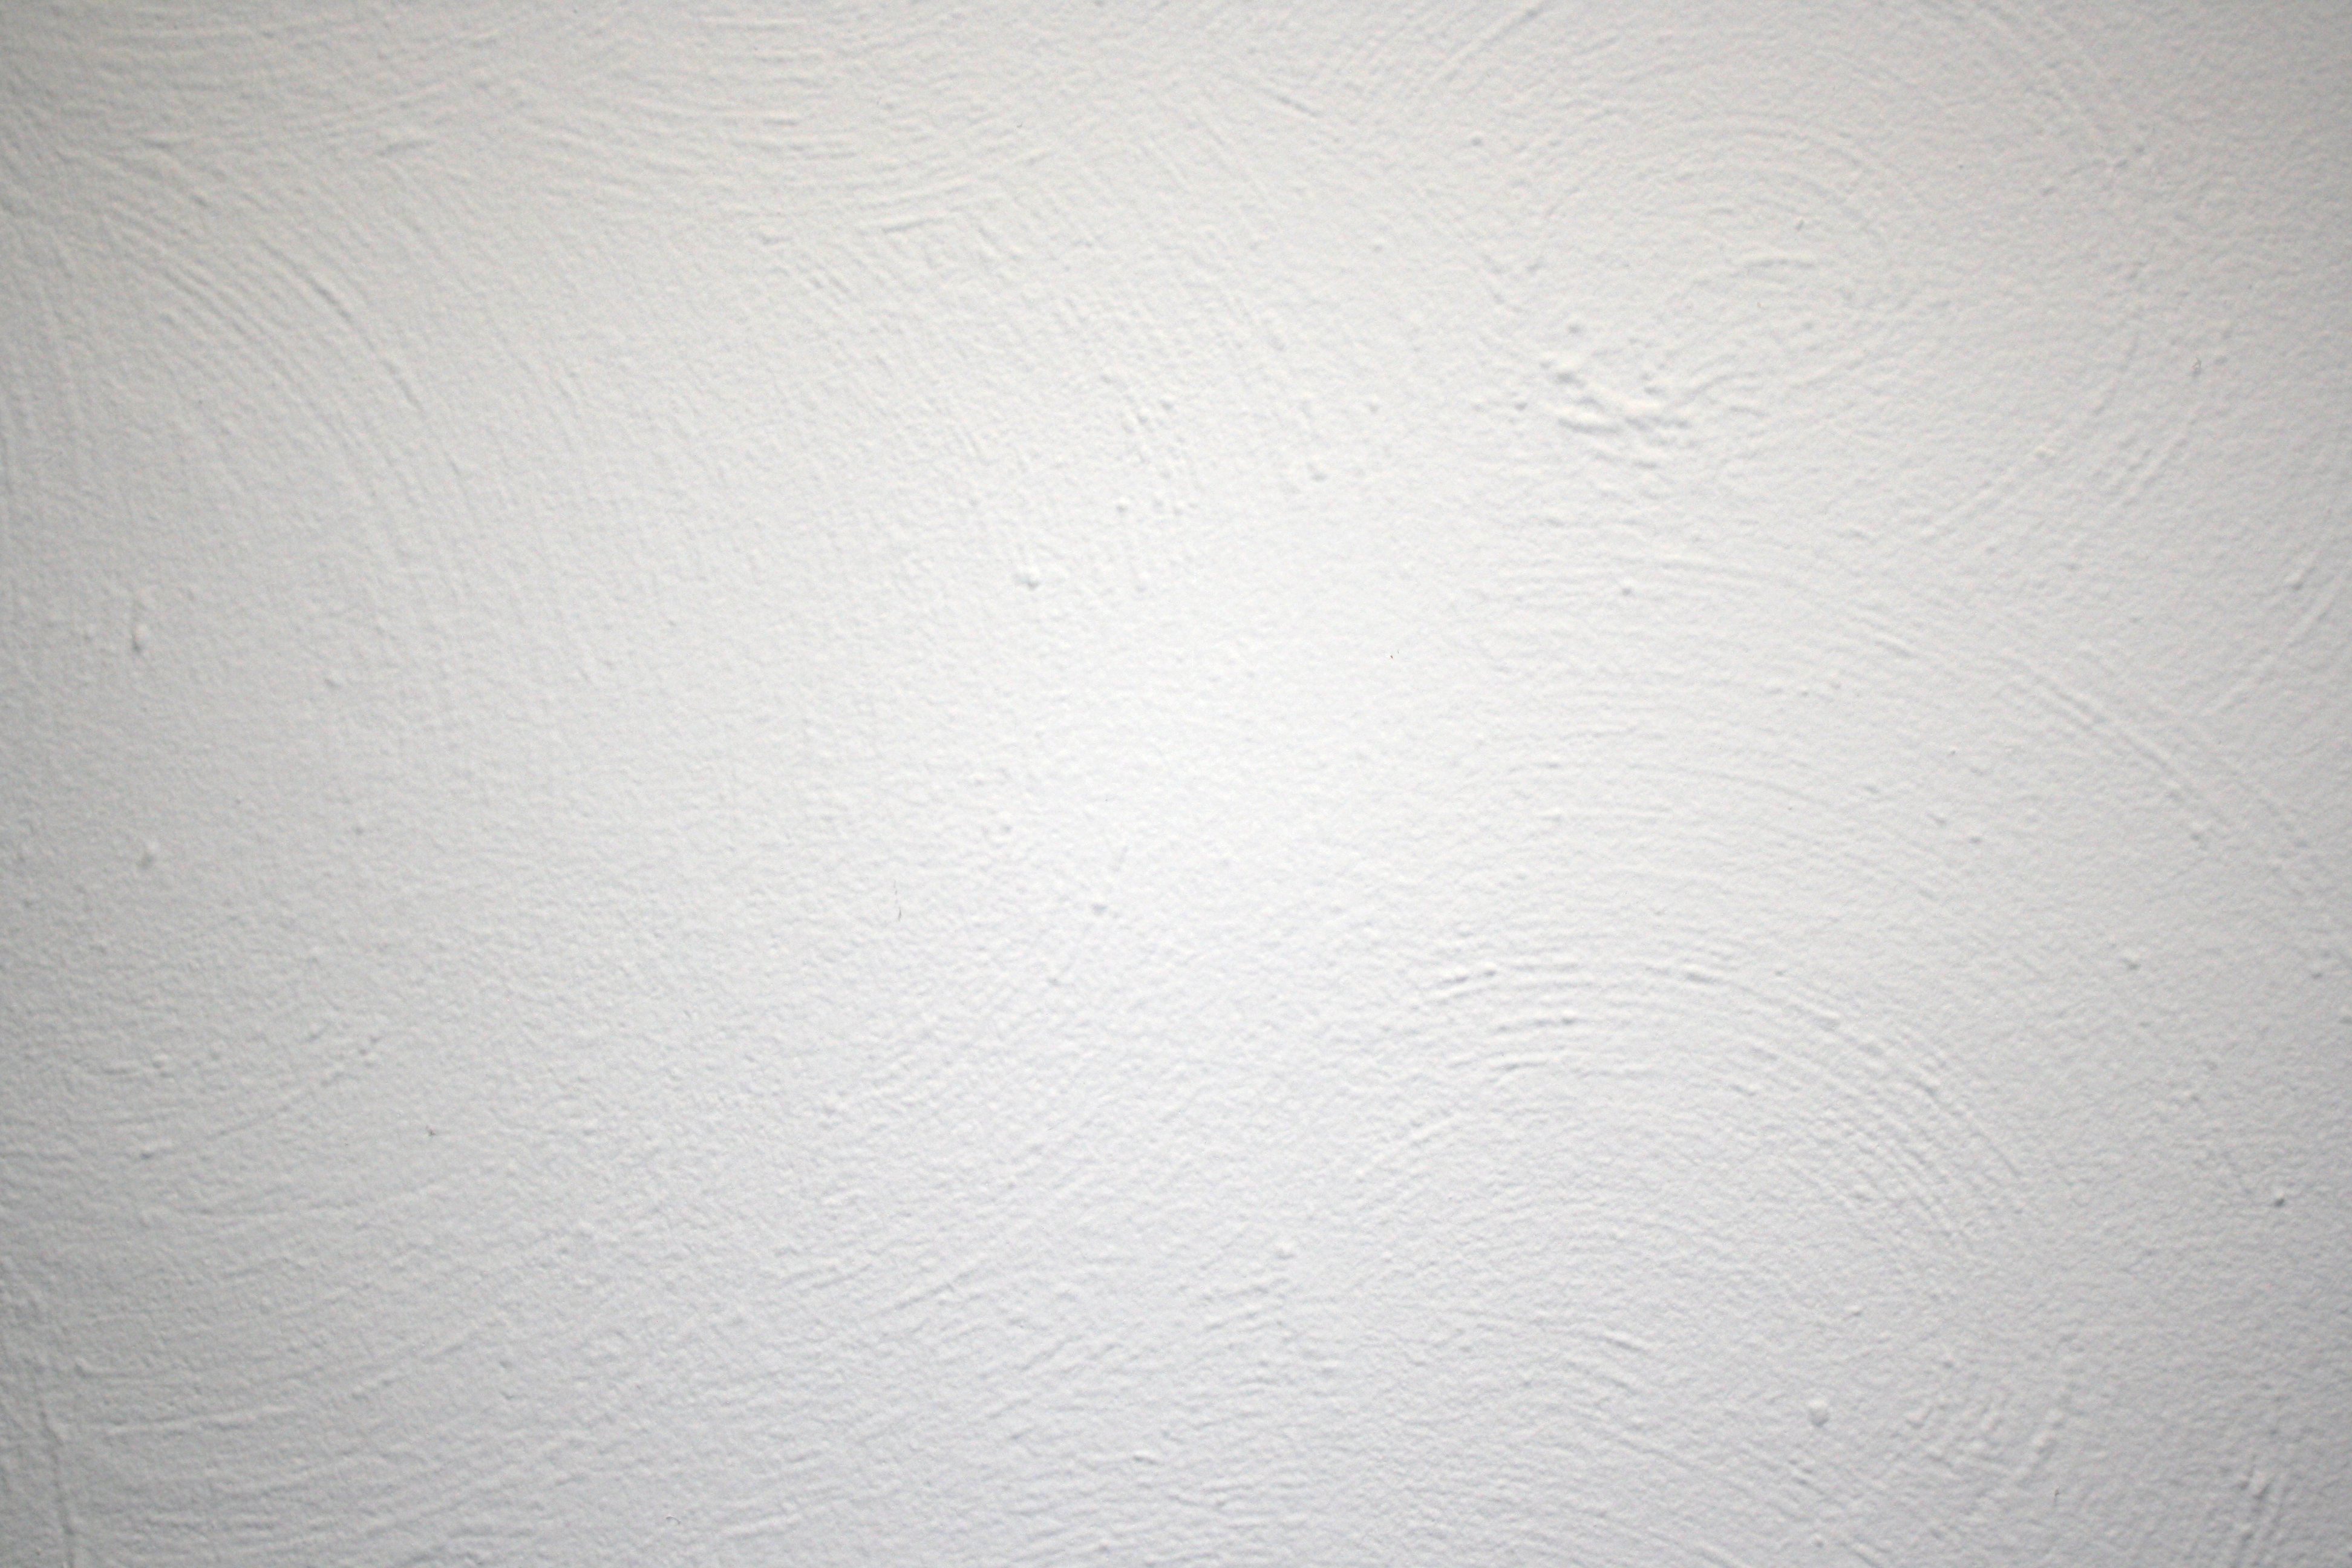 Textured Ceiling Plaster Picture | Free Photograph ...